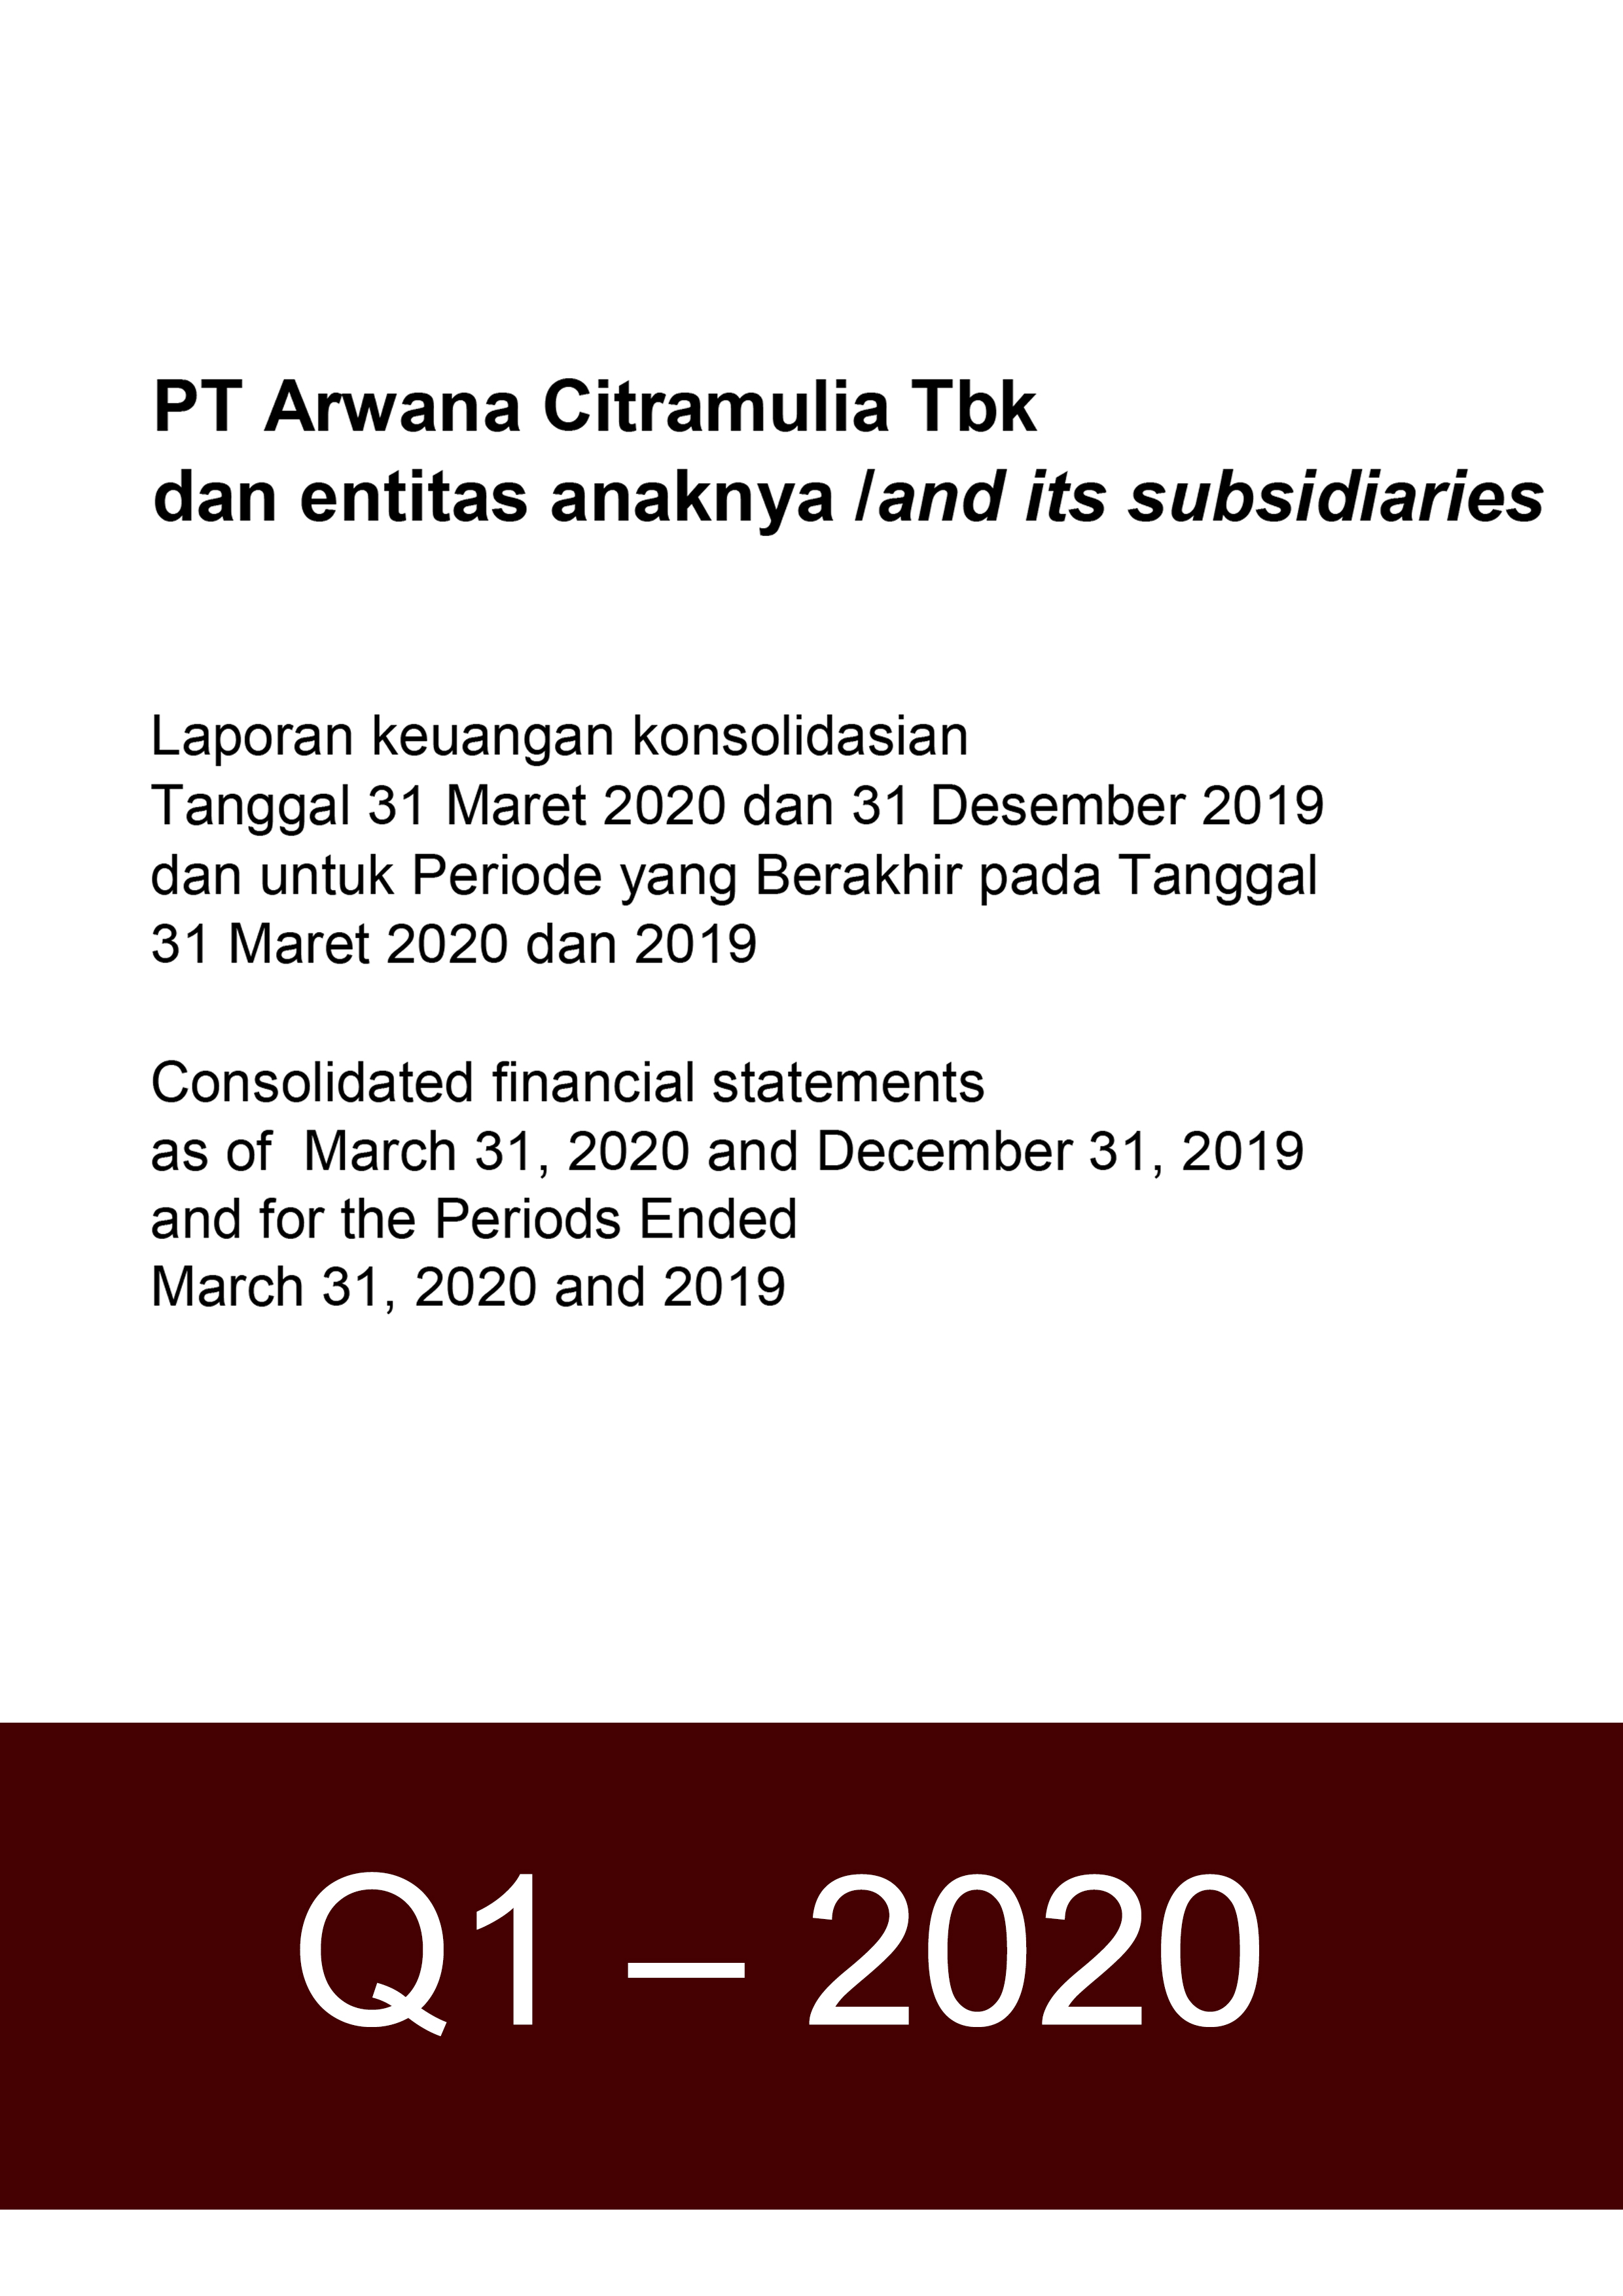 Financial Report 2020 Q1